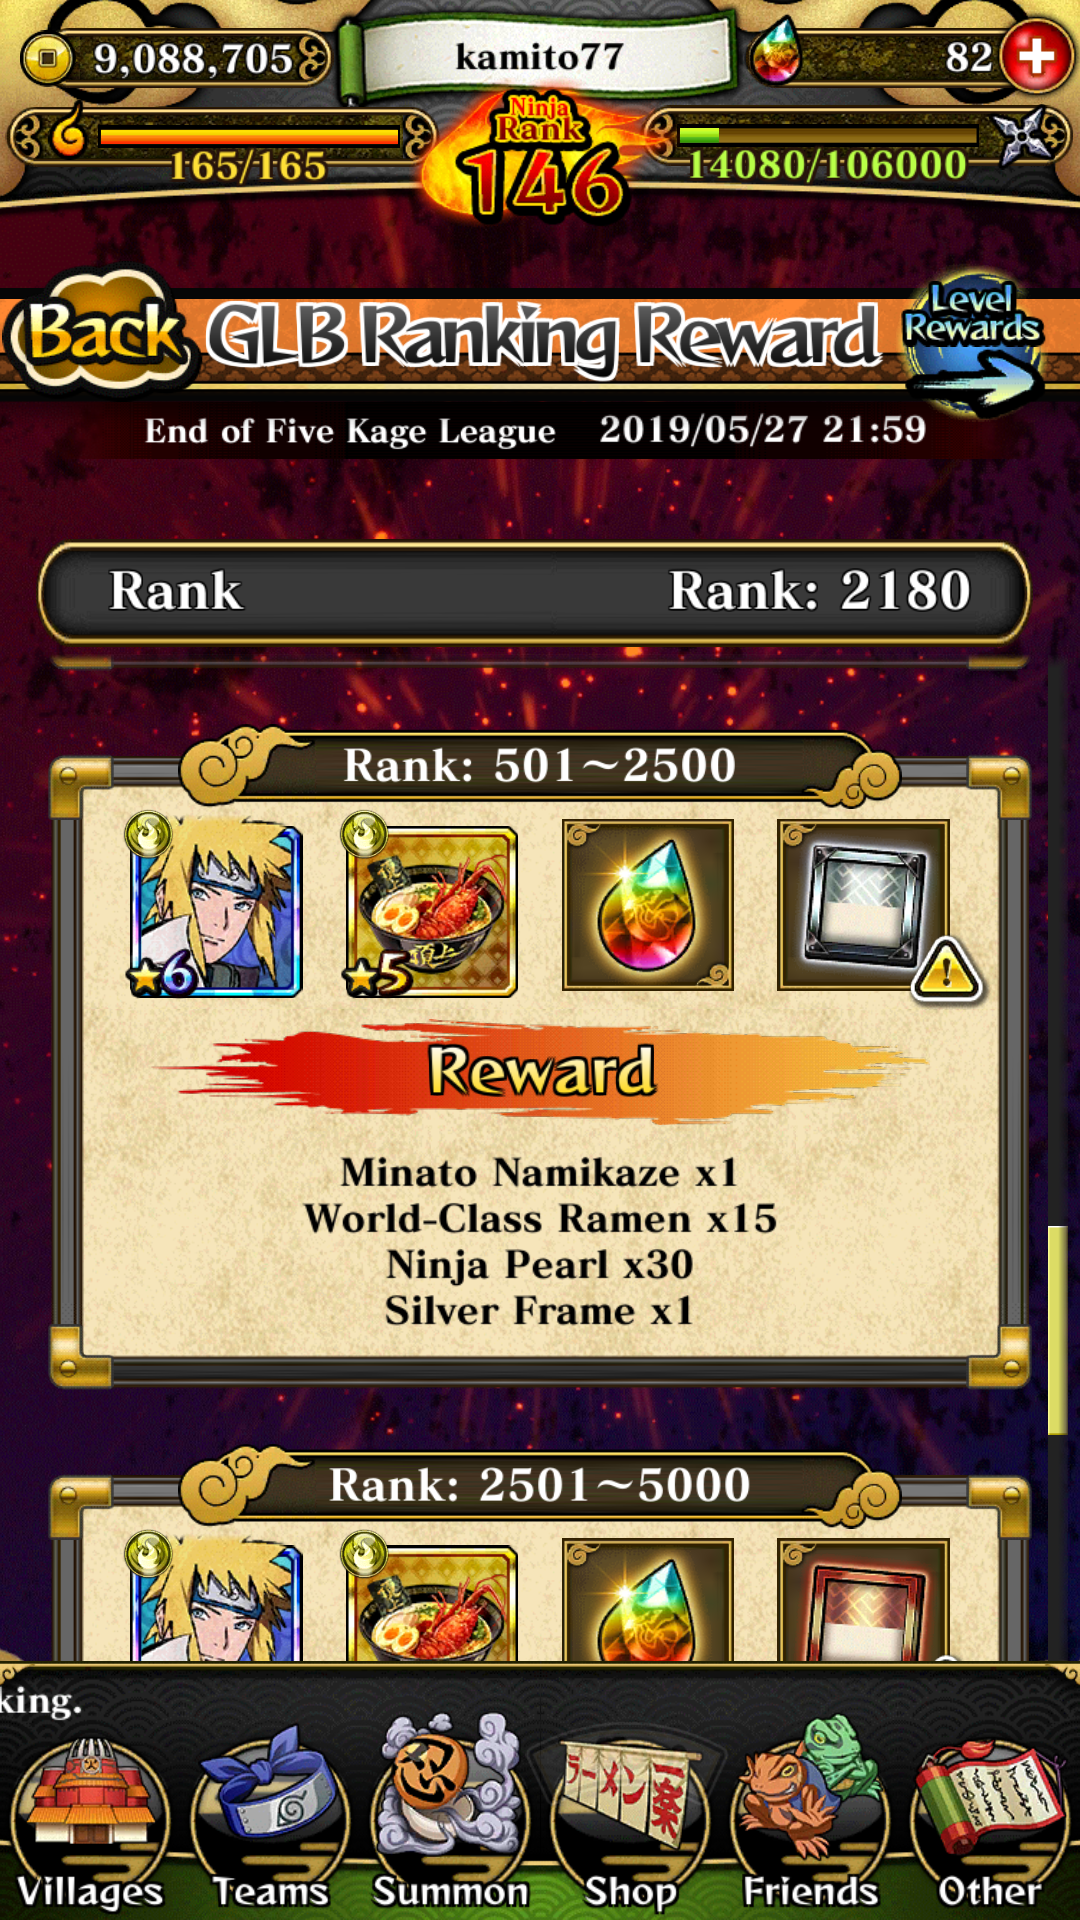 If I'm in this rank, wich Will be my reward?